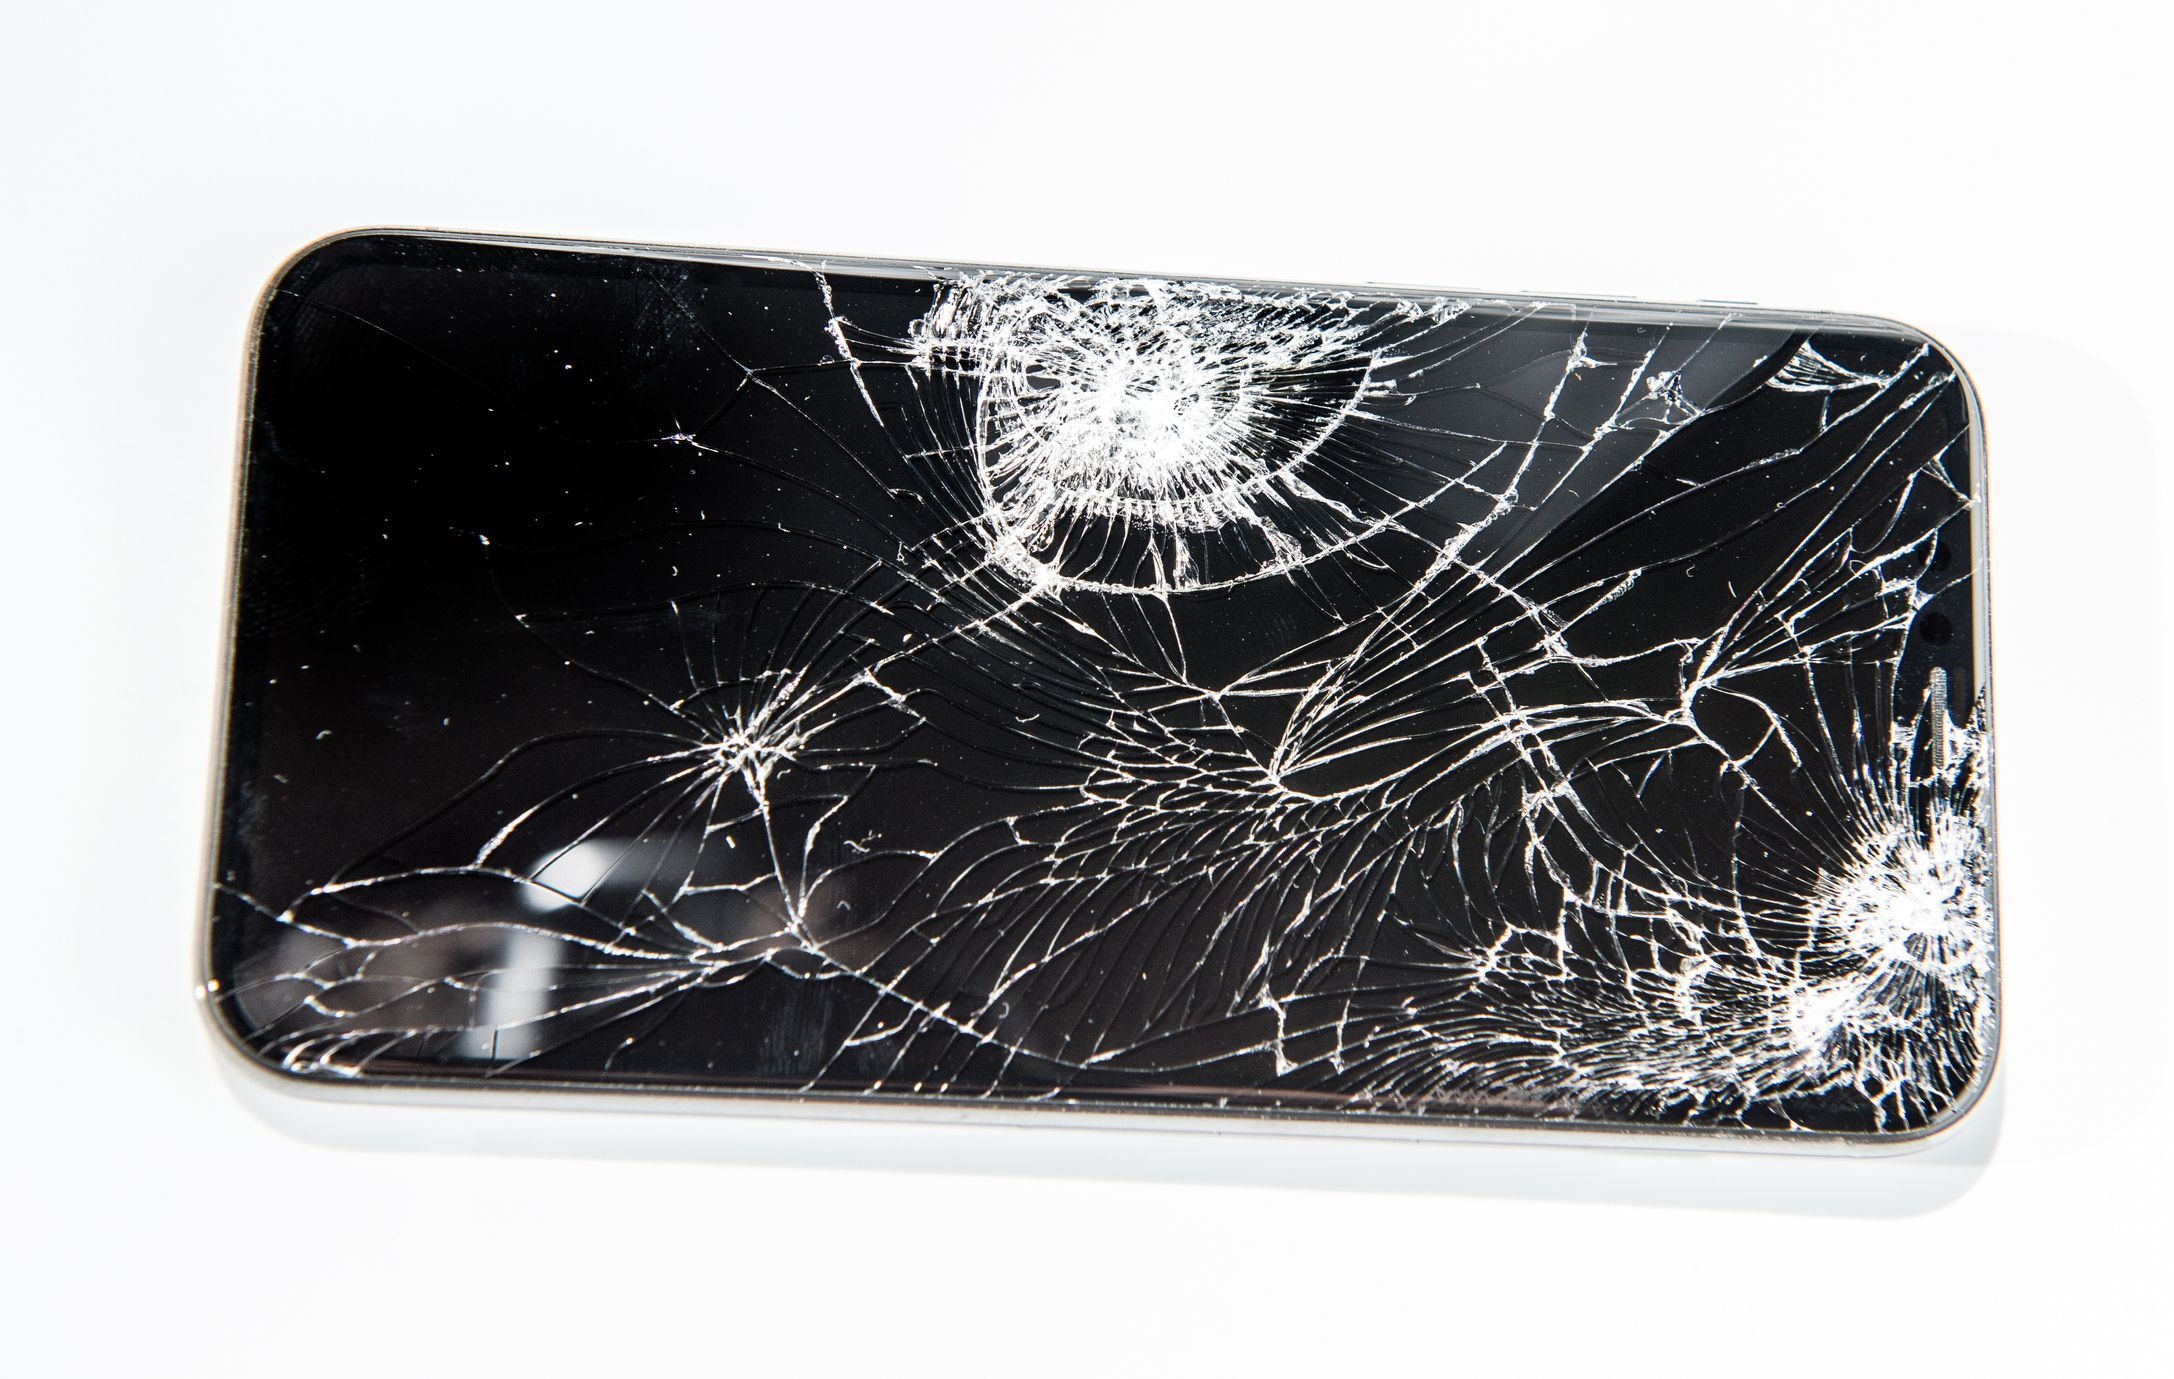 fix iphone screen how to fix a cracked screenbroken phone on white background